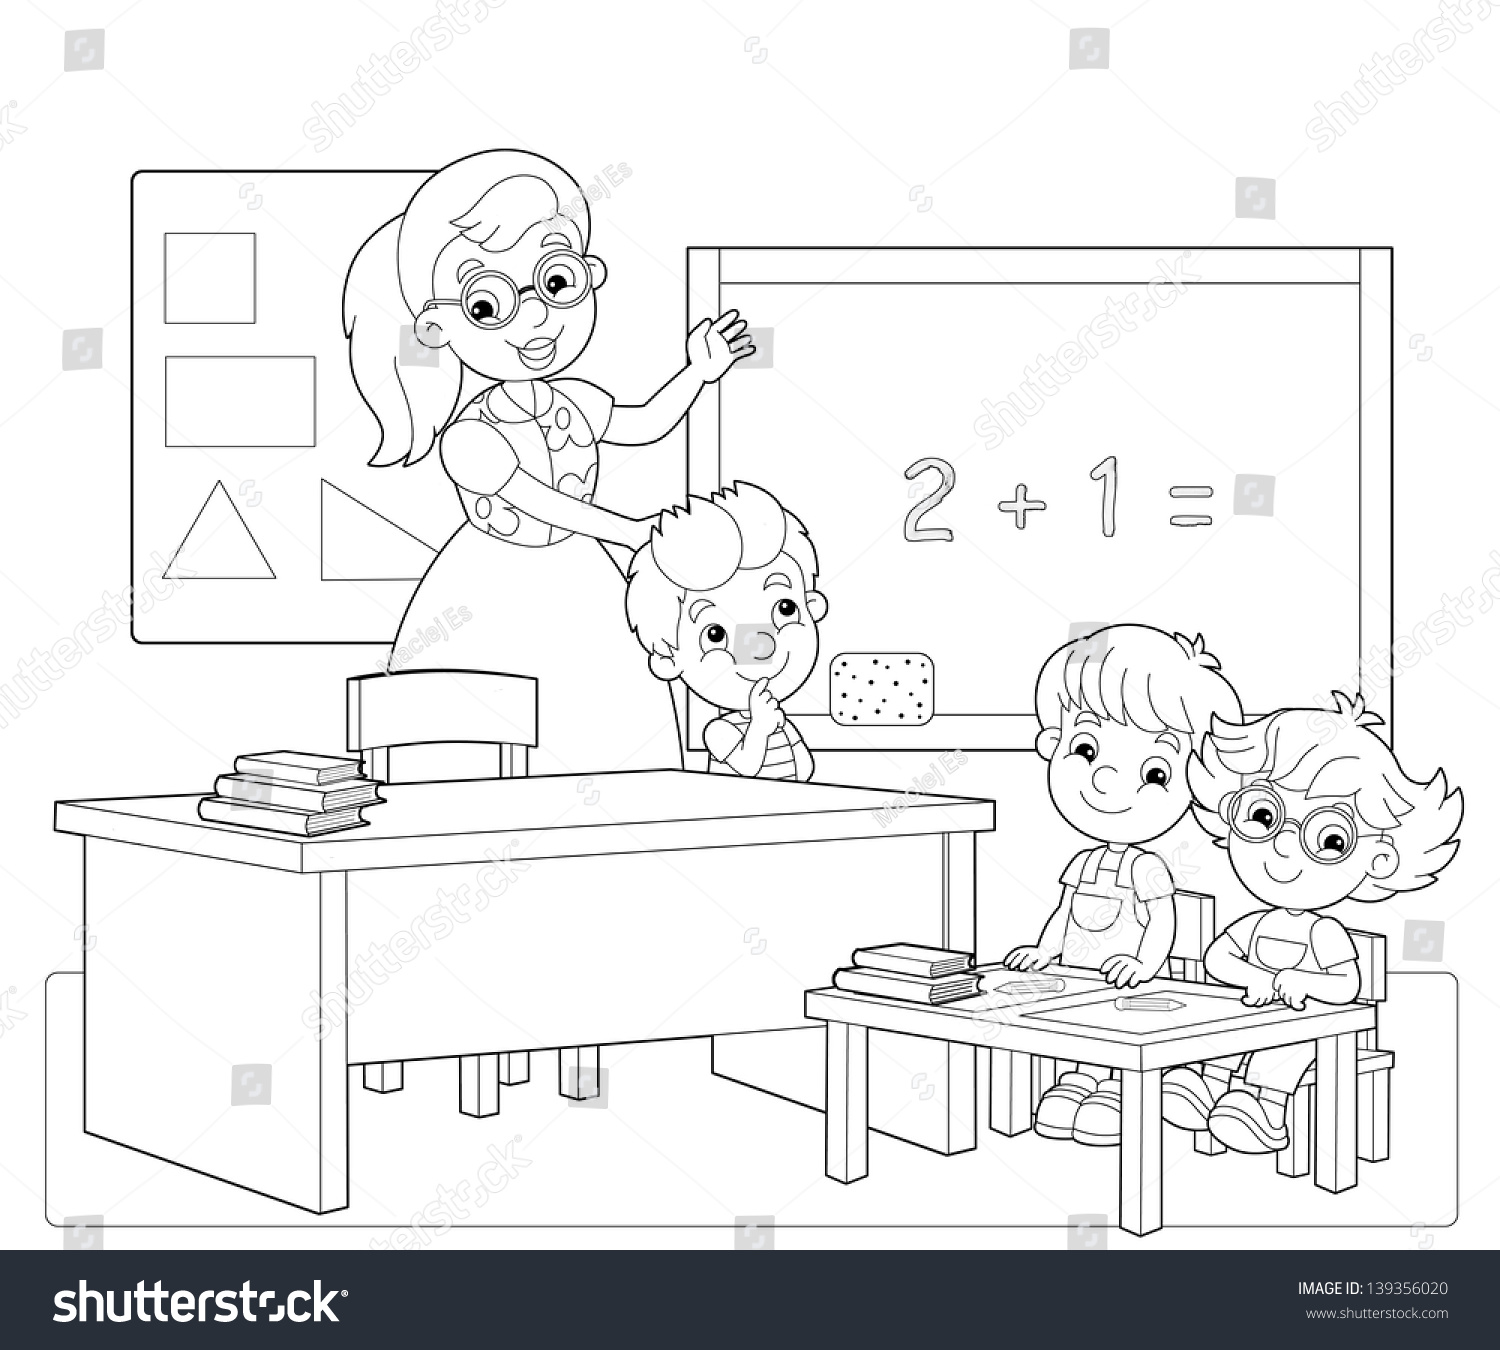 Coloring Page Classroom Illustration Children Stock